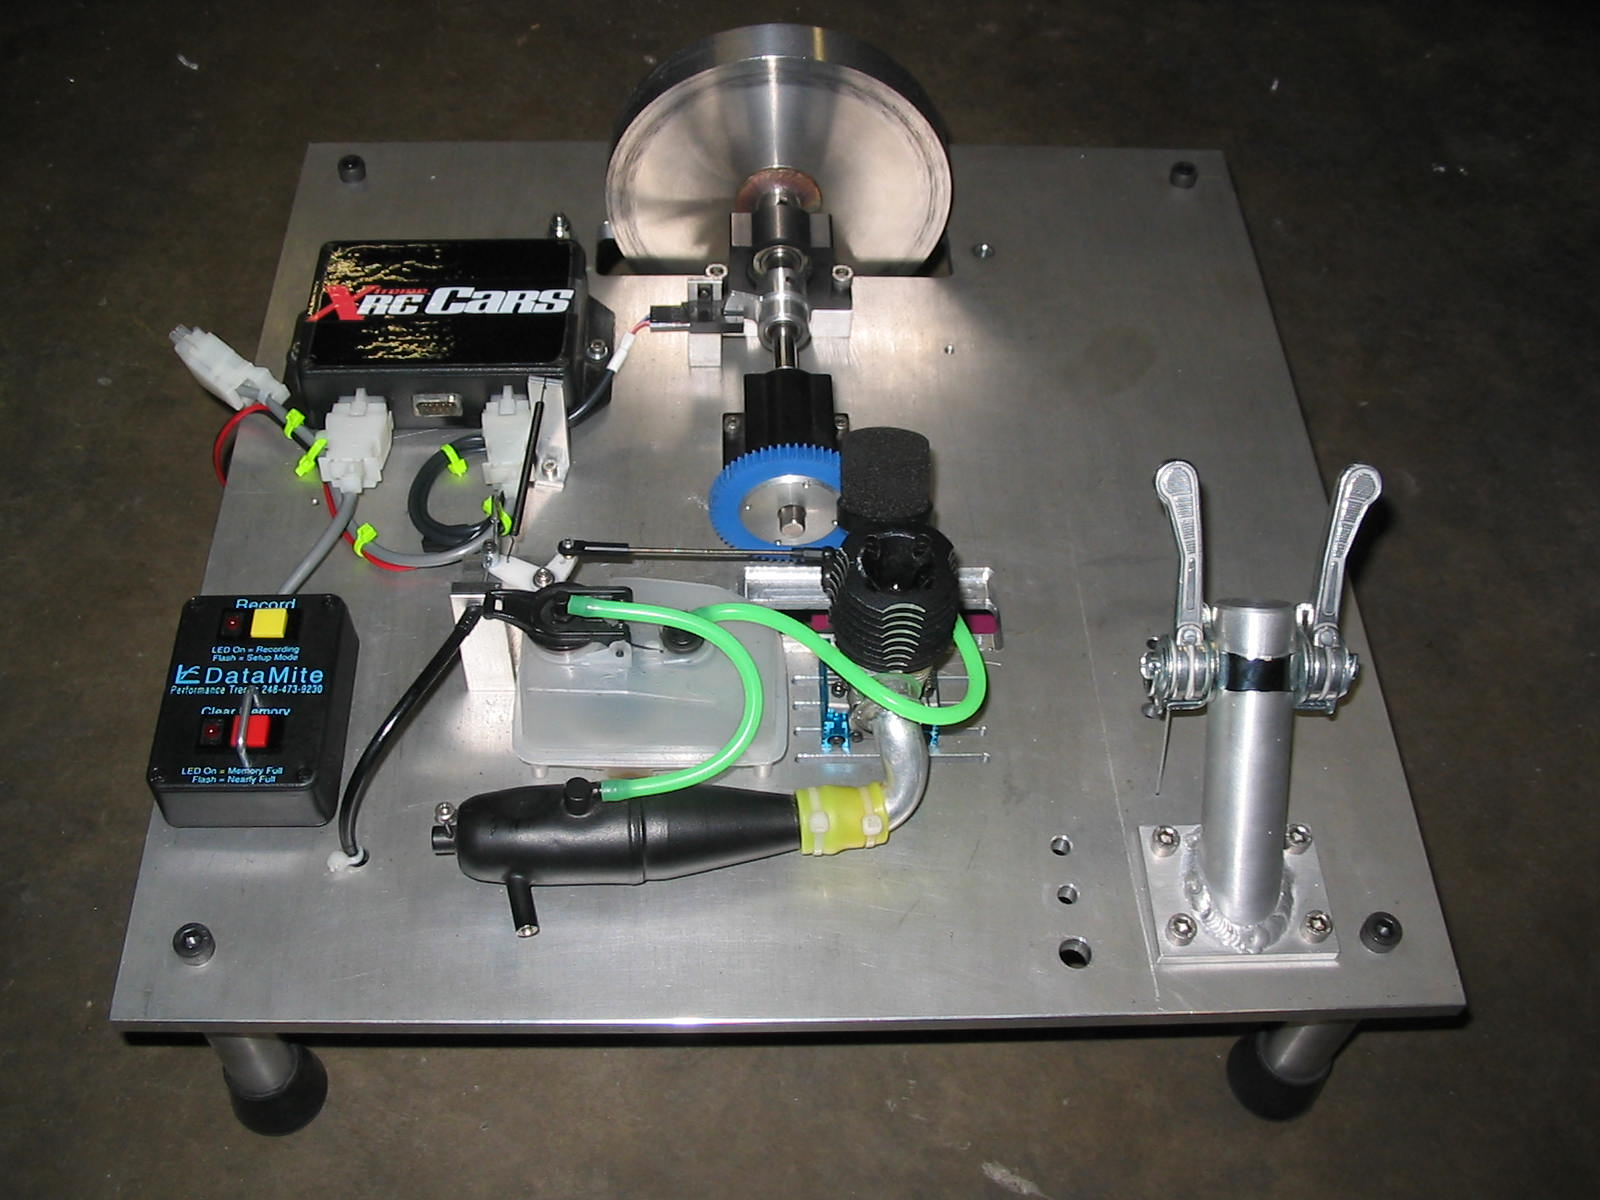 How to measure an engine 39 s torque r c tech forums for How to measure motor torque